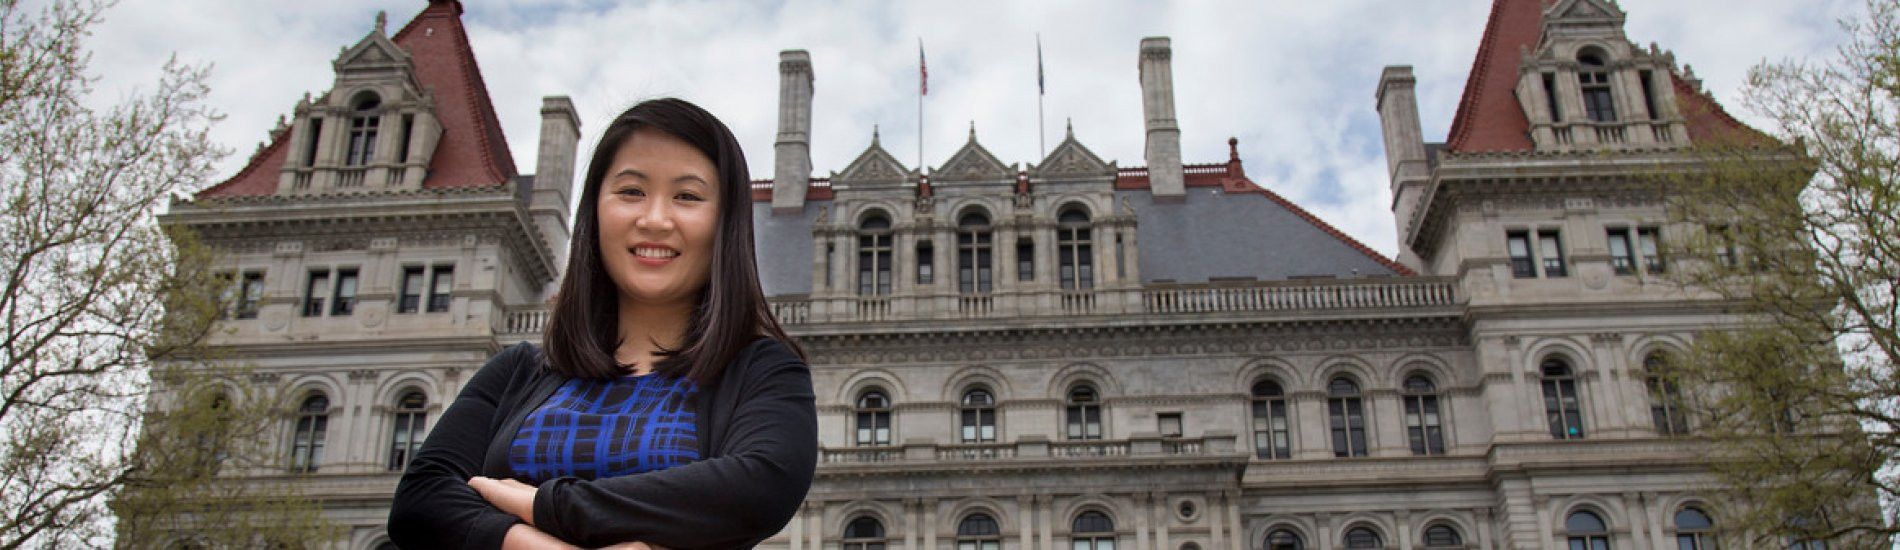 Doctoral student Sora Park in front of the New York State Capitol Building